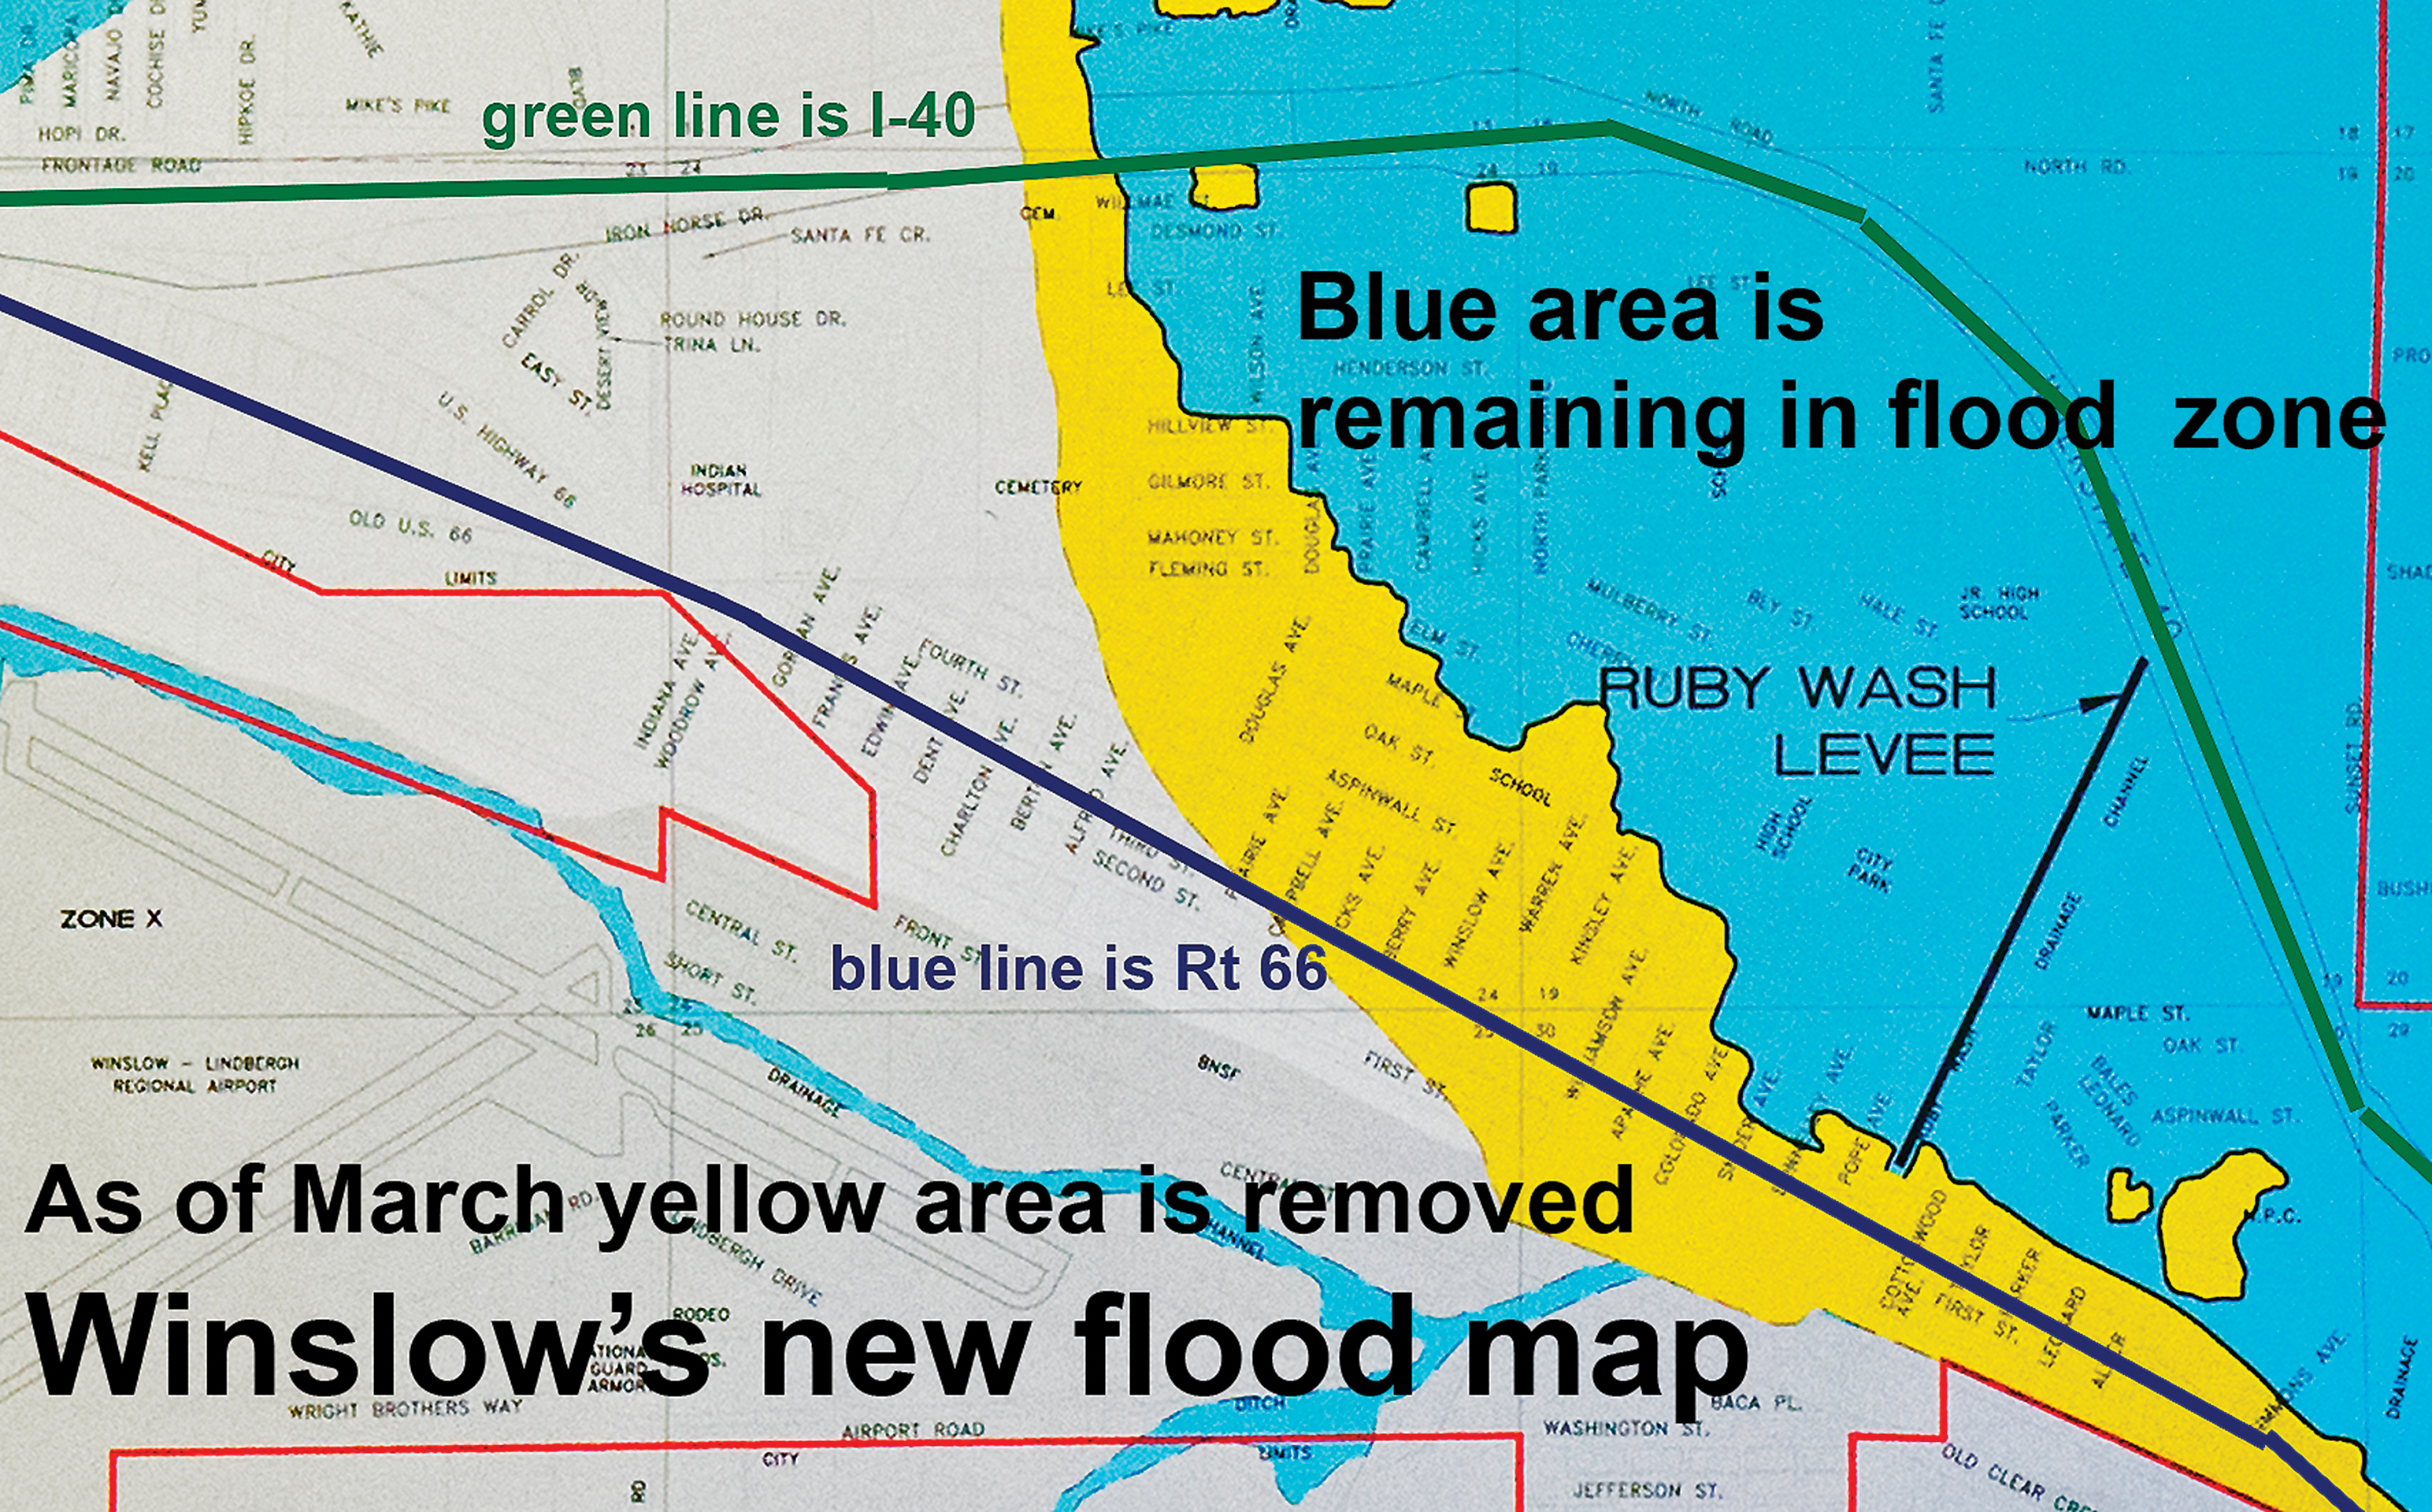 fema floodplain maps with Fema Finalizes Winslows Flood Plain Map on 140227121 likewise Fema Finalizes Winslows Flood Plain Map in addition Elevation Certificates also Flood Faqs as well Flood Zones.